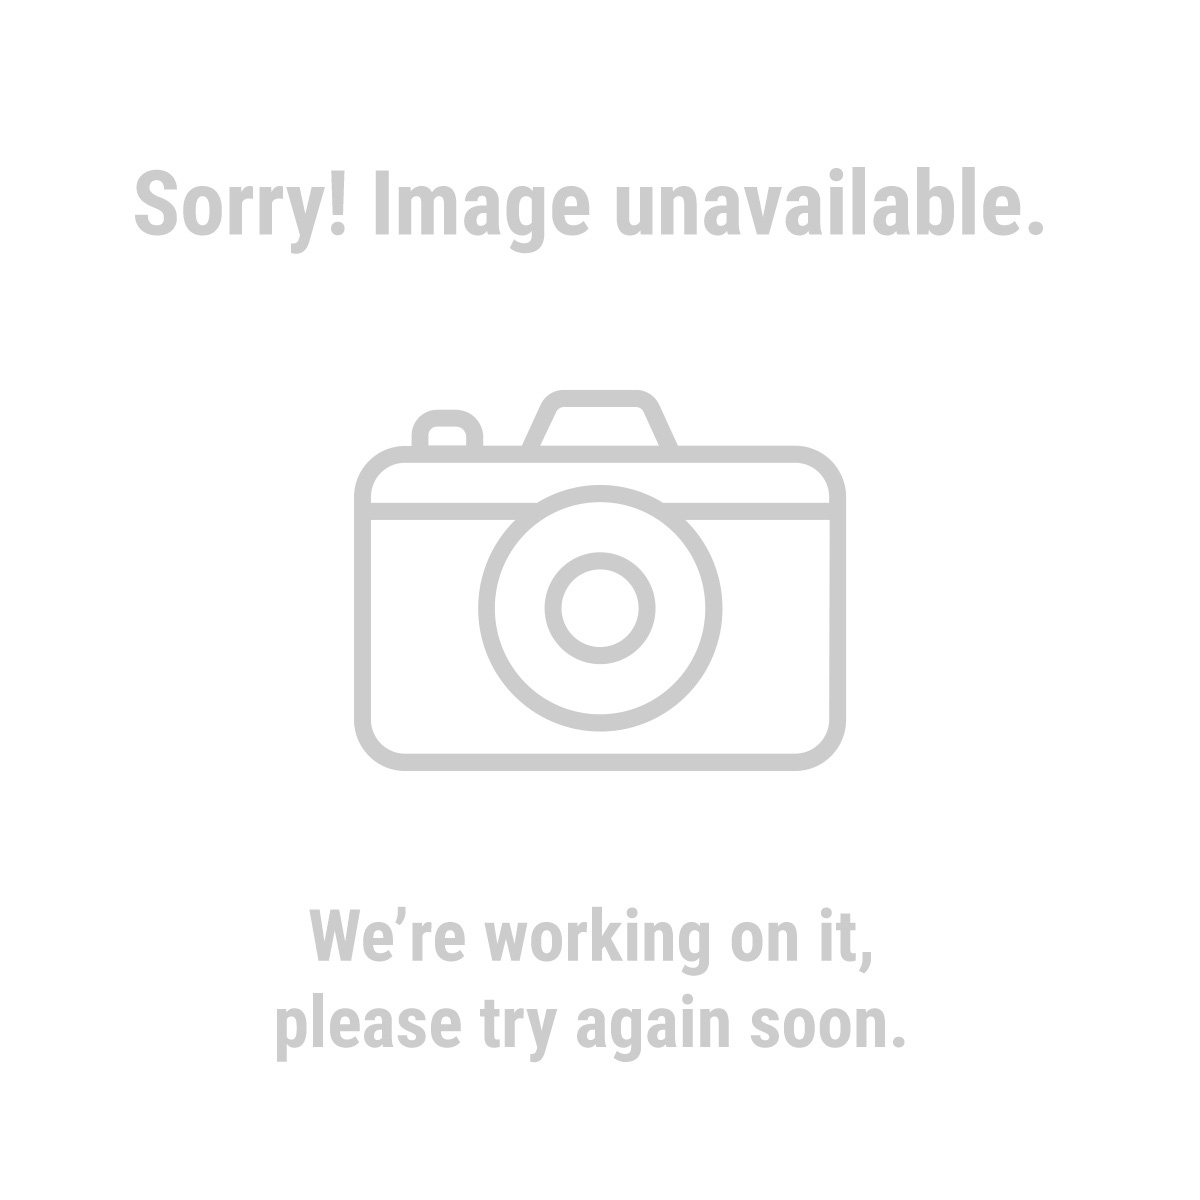 Western Safety Gloves 60448 Mechanic's Gloves, X-Large